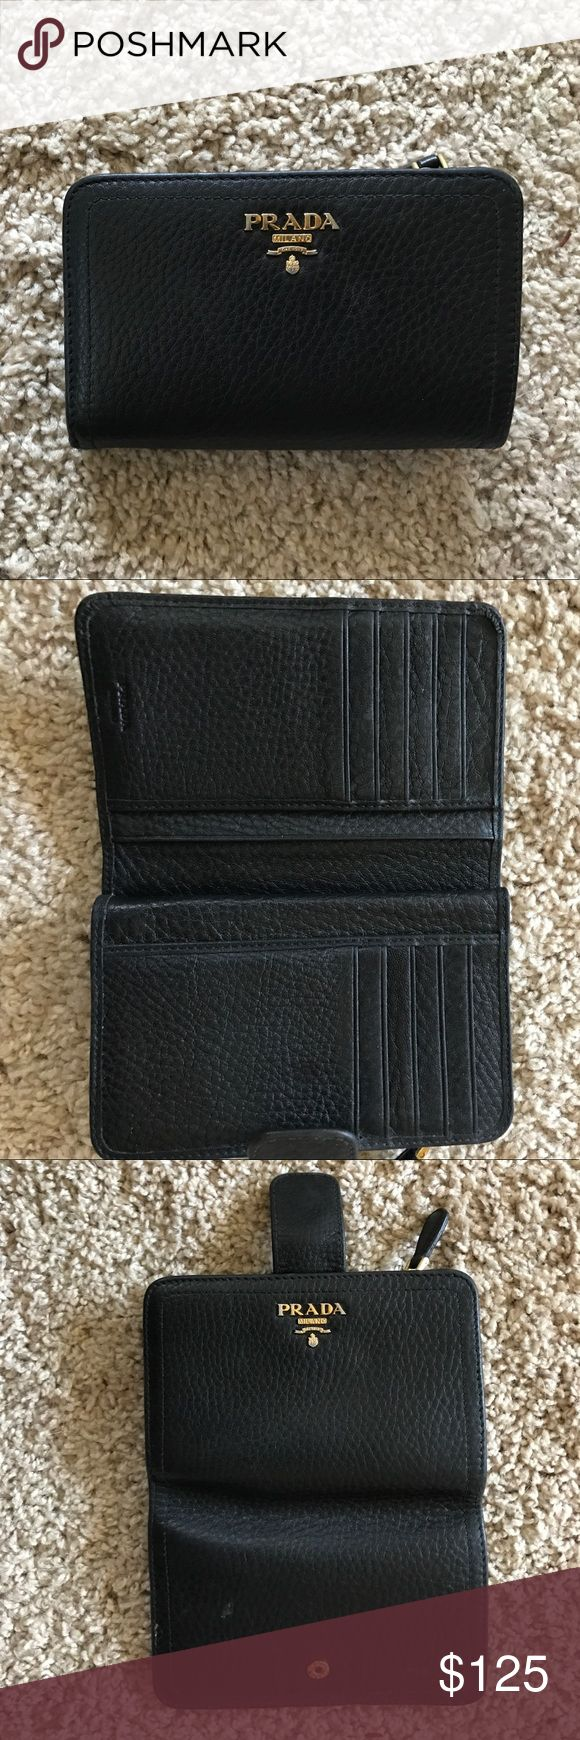 Prada Wallet Great condition. See pictures. Prada Bags Wallets